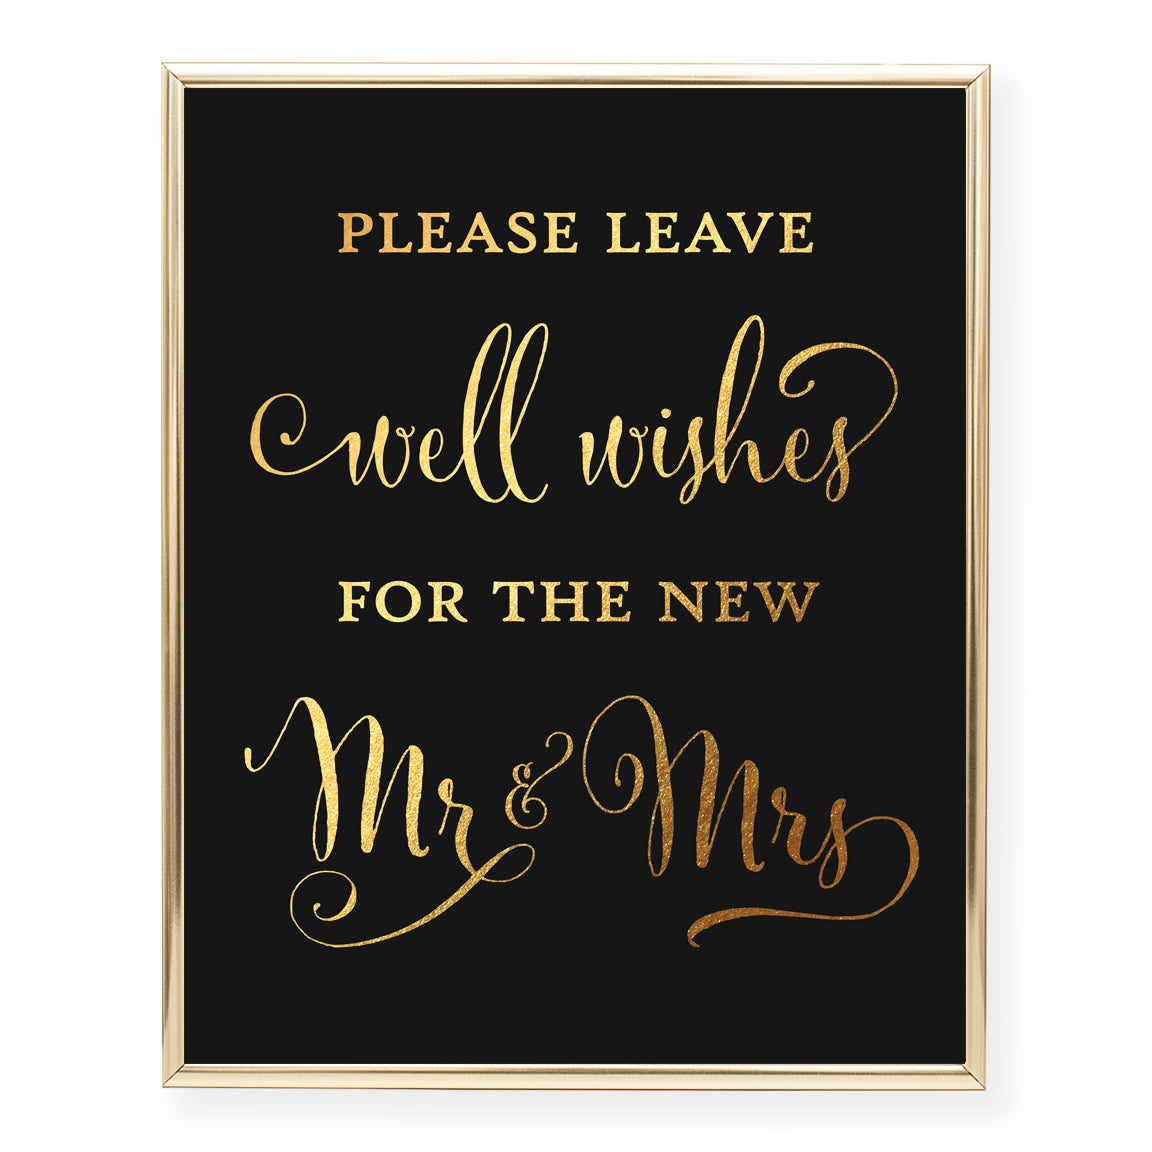 Wedding Wishes for the Newlyweds Foil Art Print